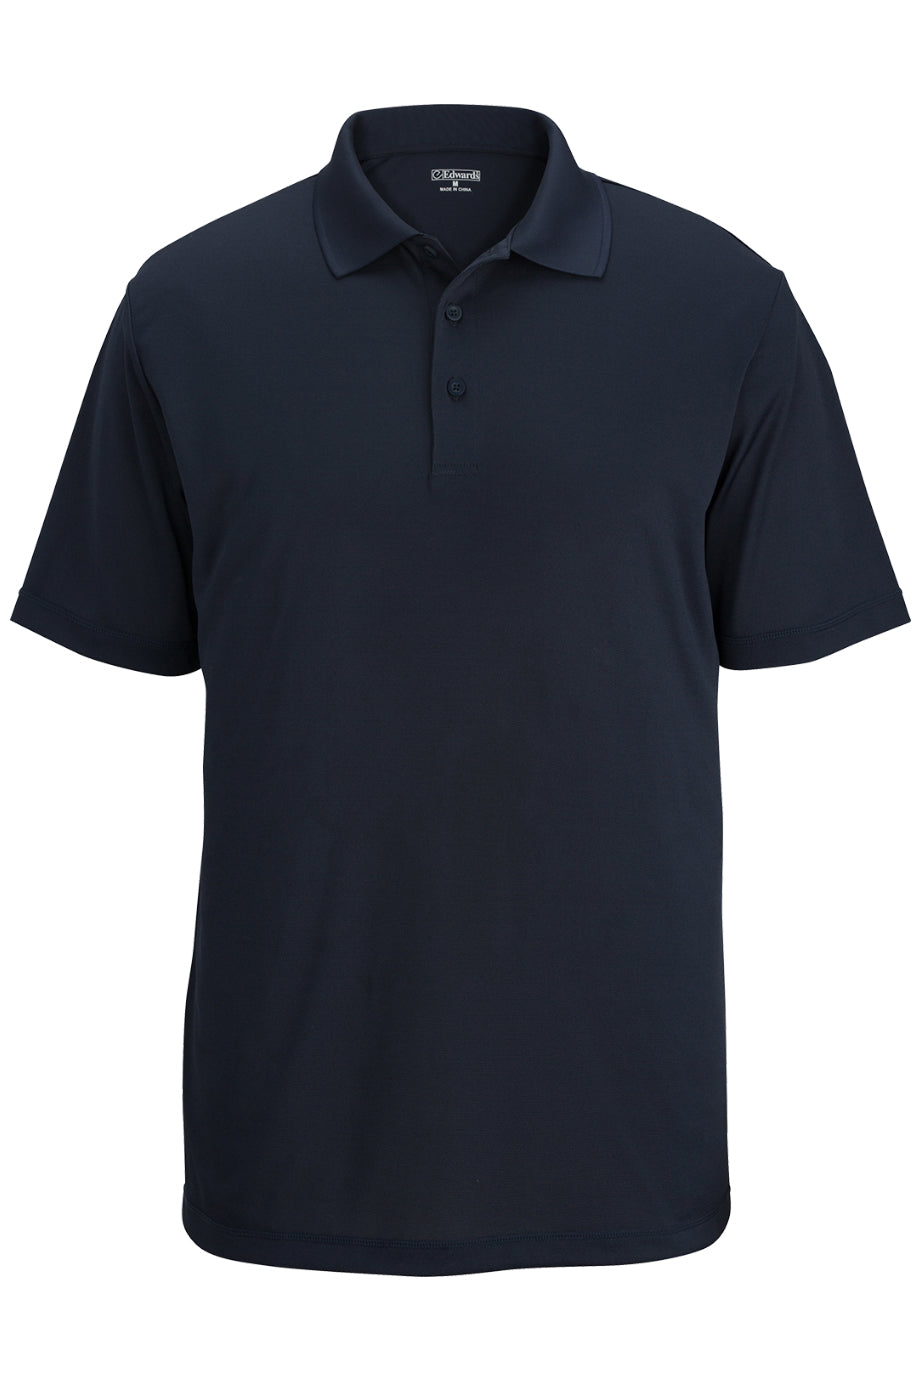 Bright Navy Edwards Mens Durable Performance Polo